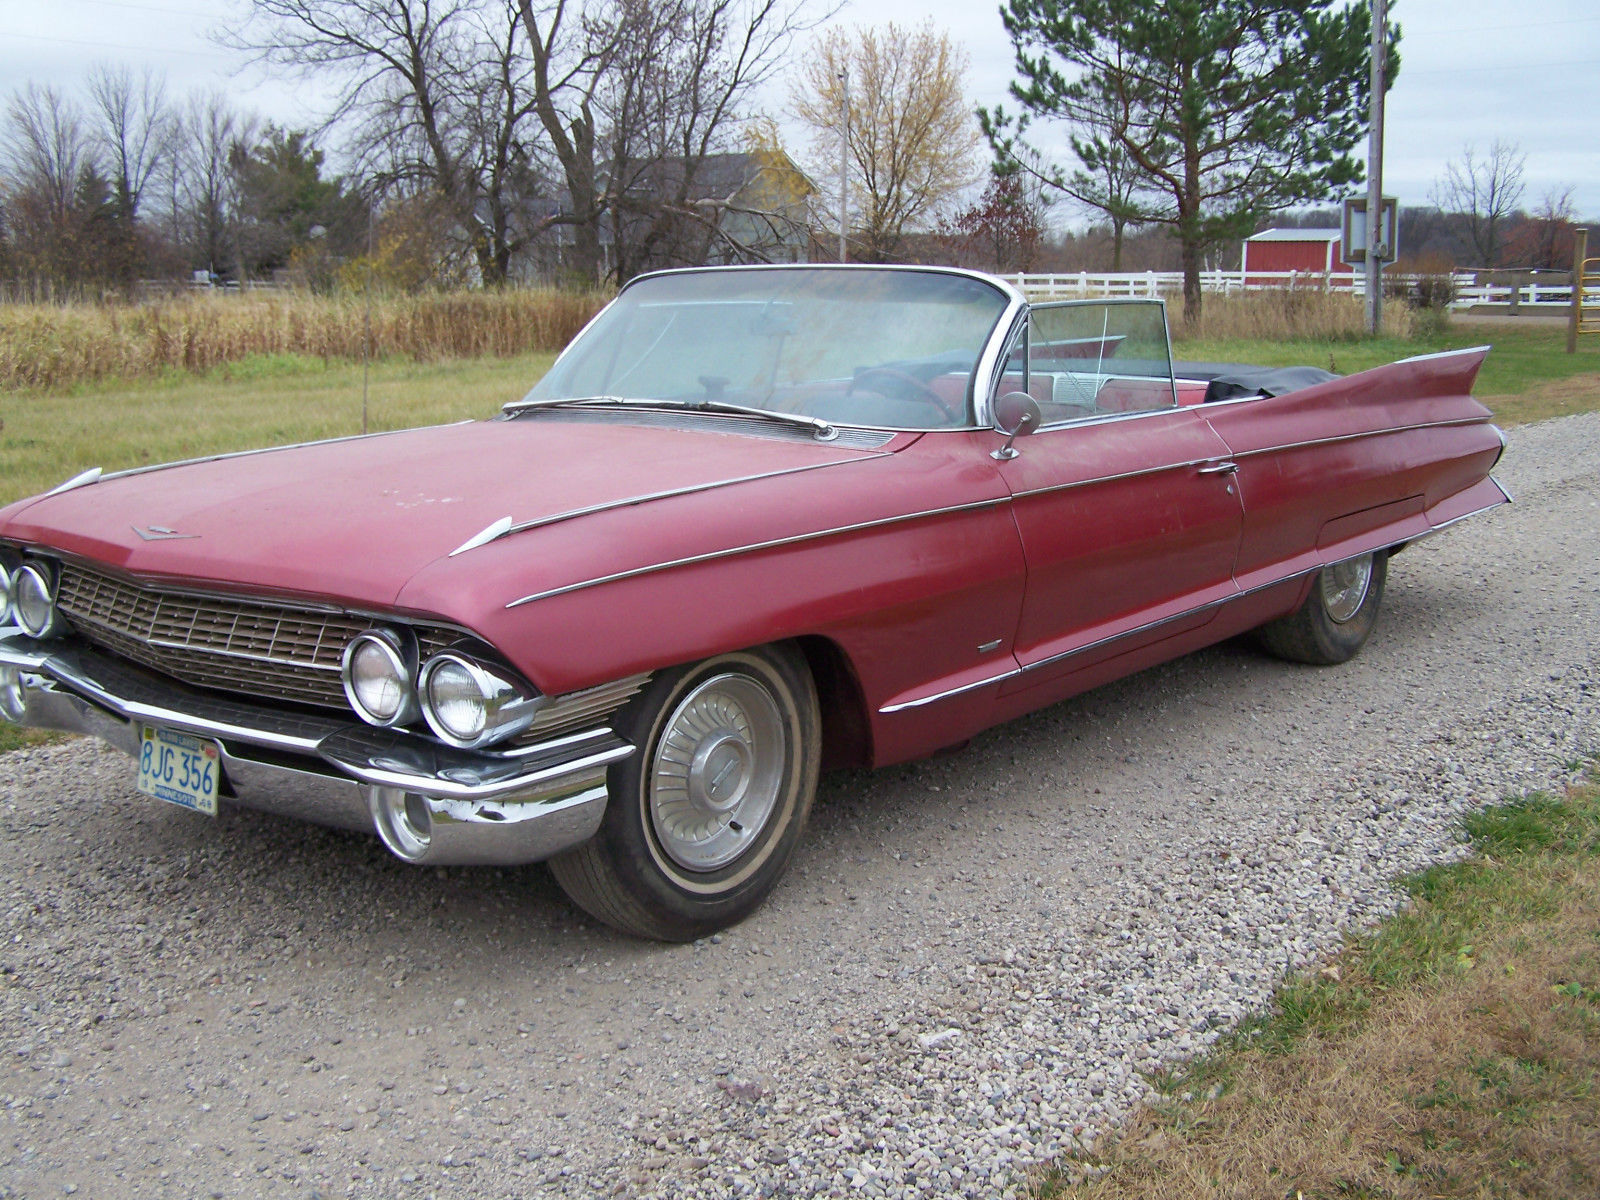 1961 Cadillac Eldorado Convertible In Storage For Over 25